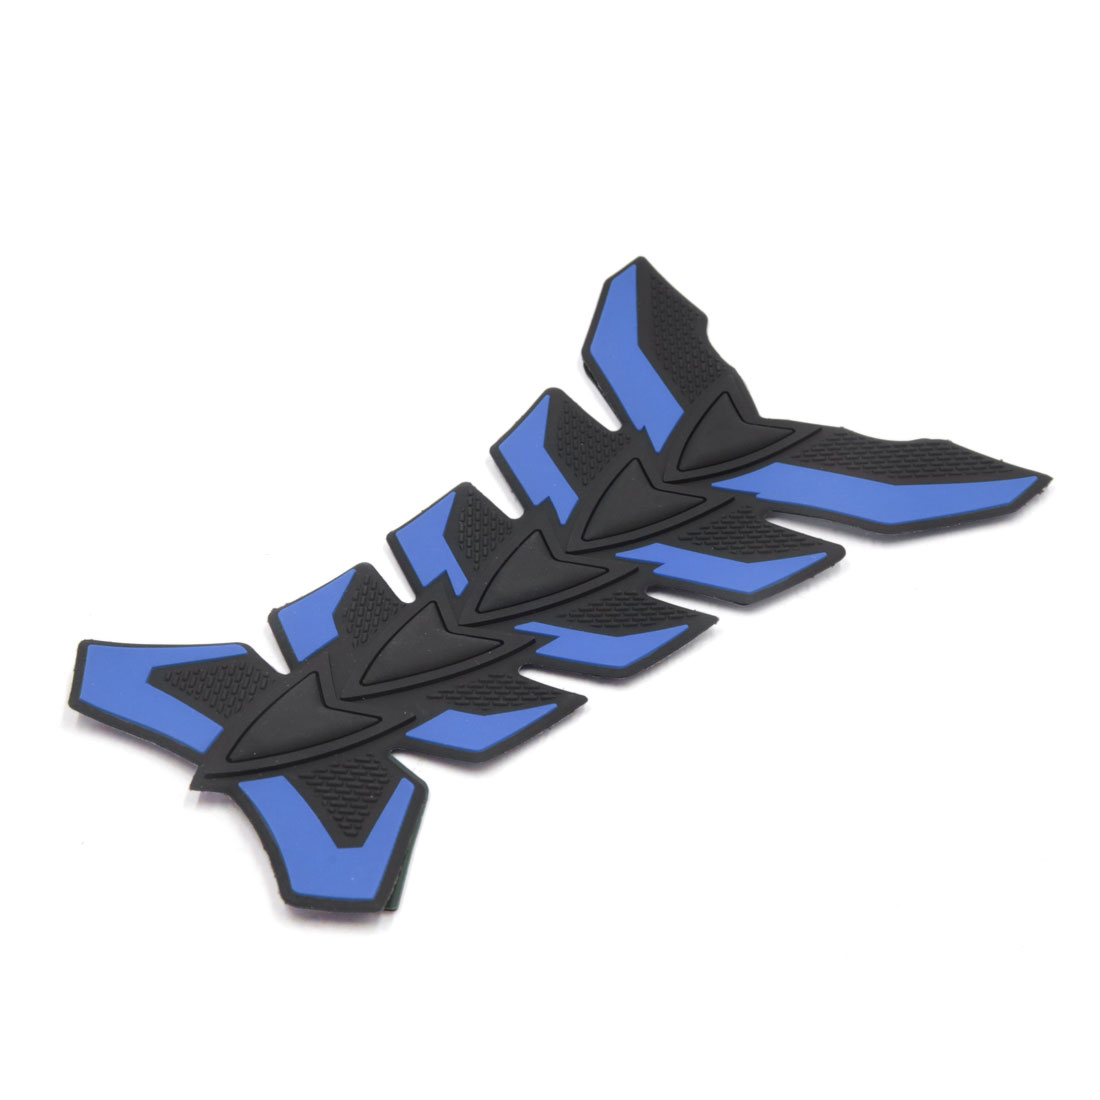 Rubber Motorcycle Oil Fuel Tank 3D Pad Sticker Protector Emblem Decal Blue Black